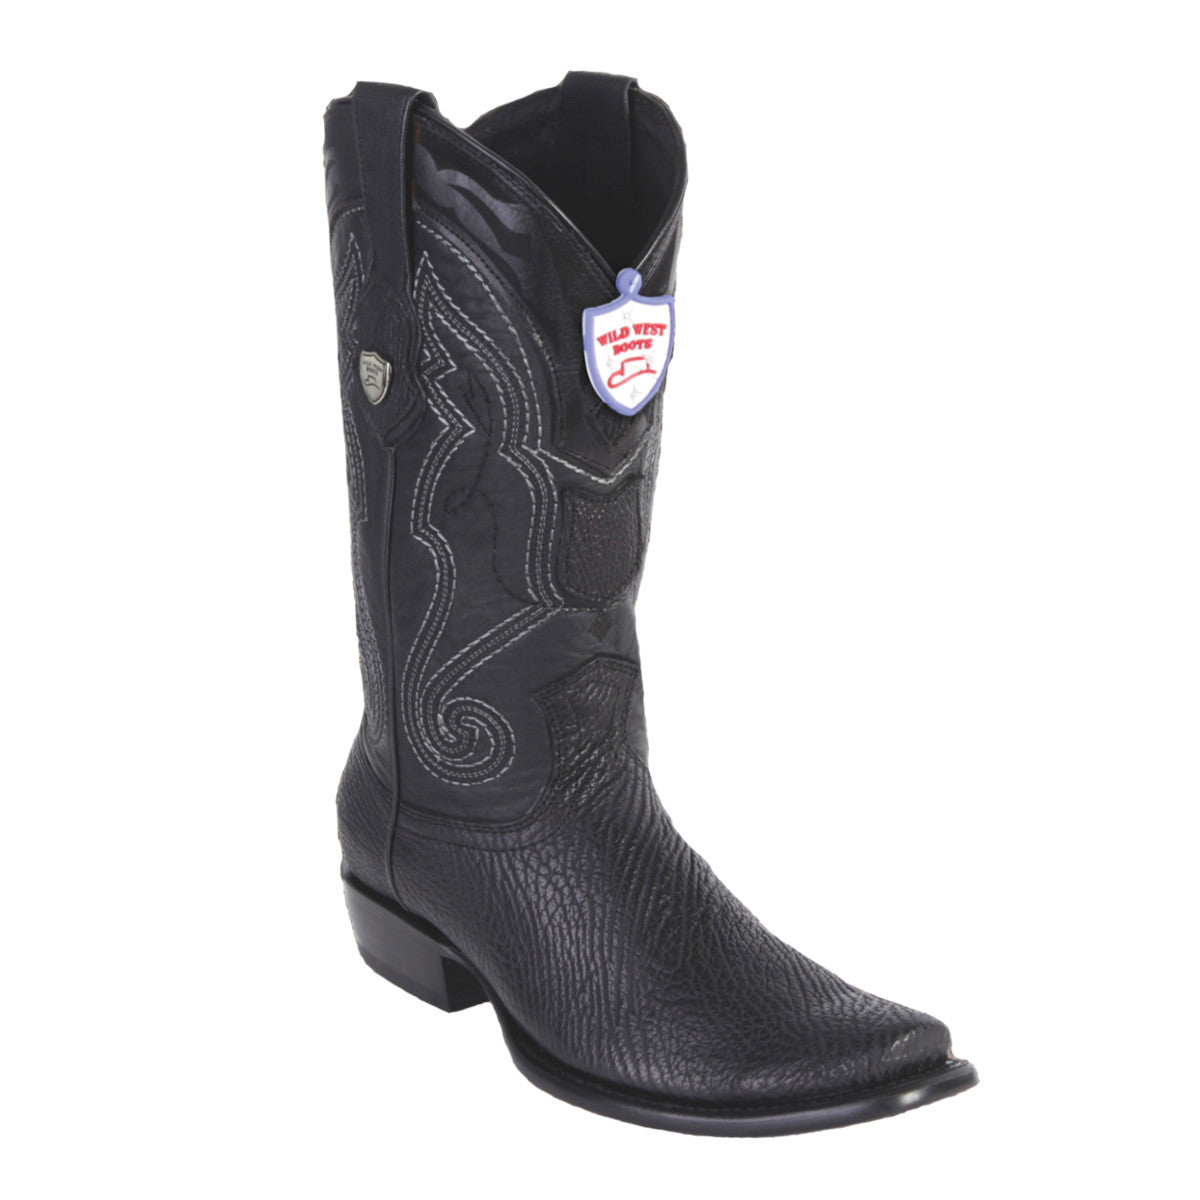 Wild West Boots H79 Dubai Boot Shark - Black